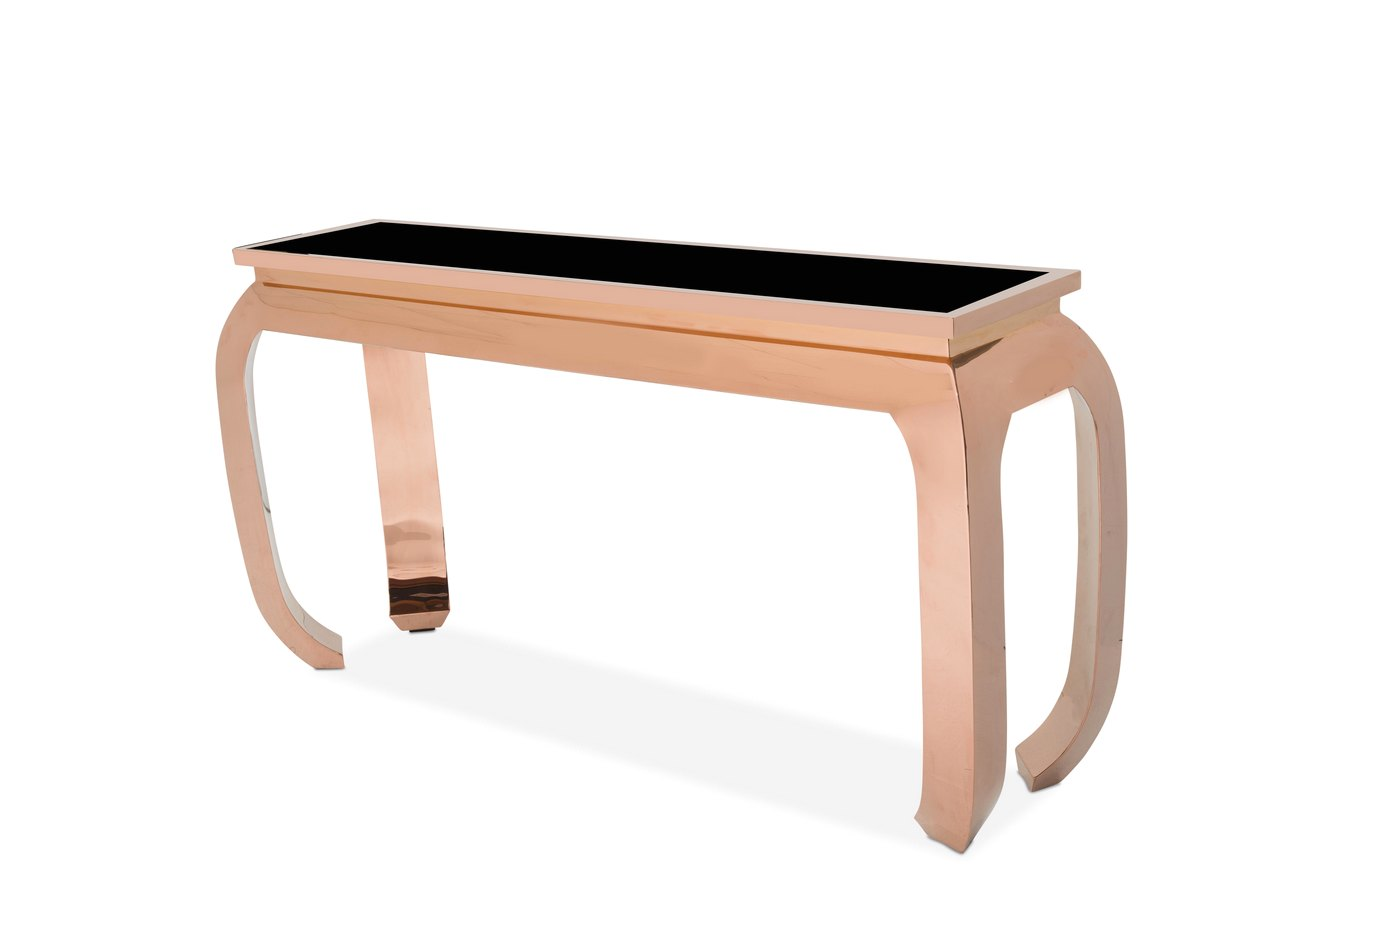 Pietro ultra modern sofa table with glass top and rose for Sofa table glass